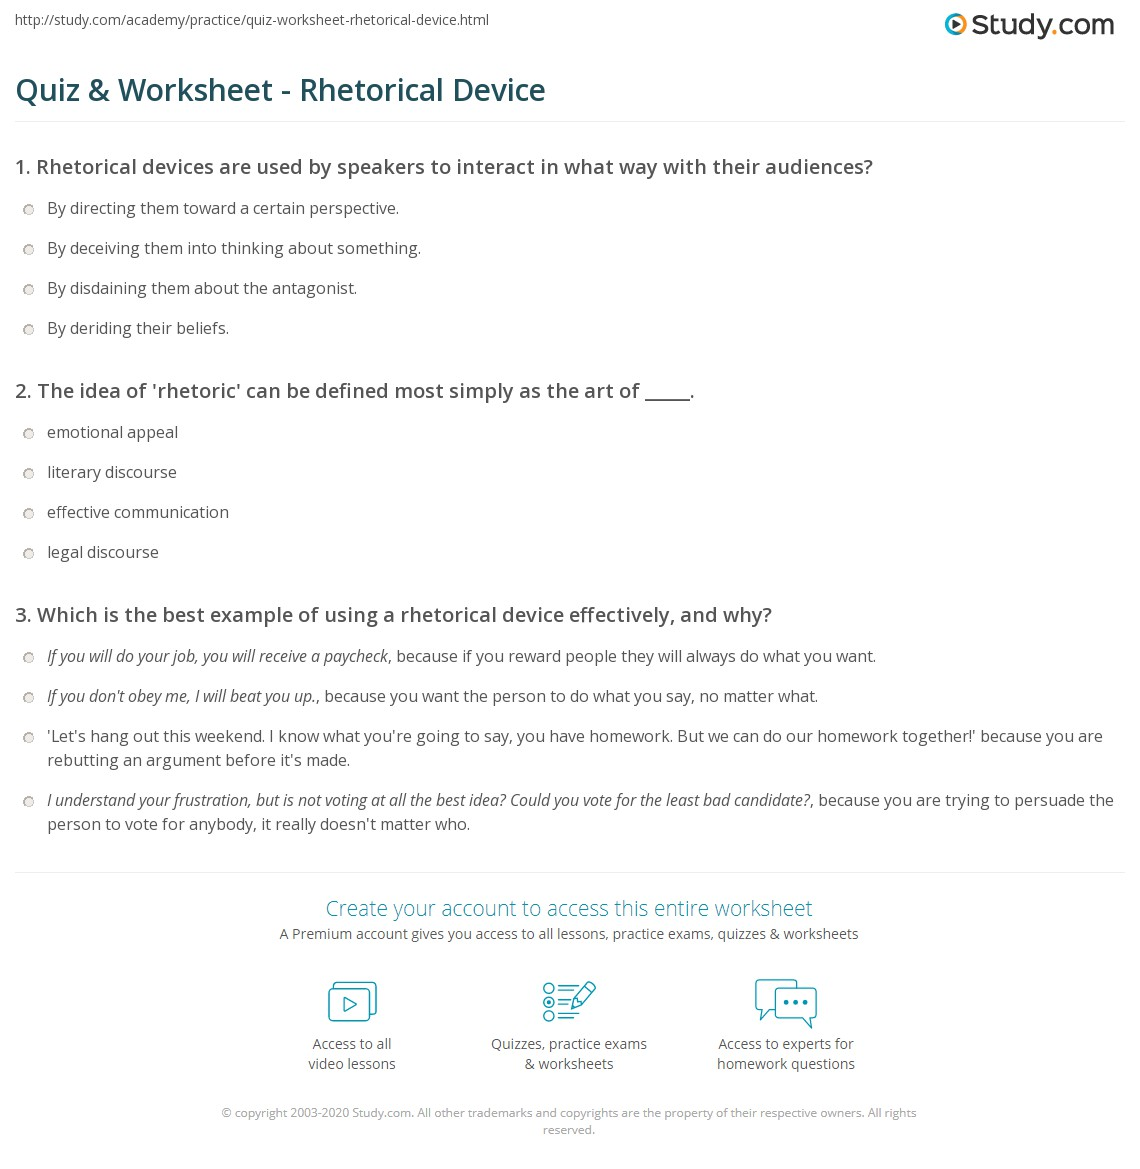 rhetorical device quiz 5 practice essay Writing ap english essay guide 5 devbrands education everyone rhetorical devices rhetorical techniques style total workout build your test-taking confidence chapter 11 practice with sample ap english language exam essays.